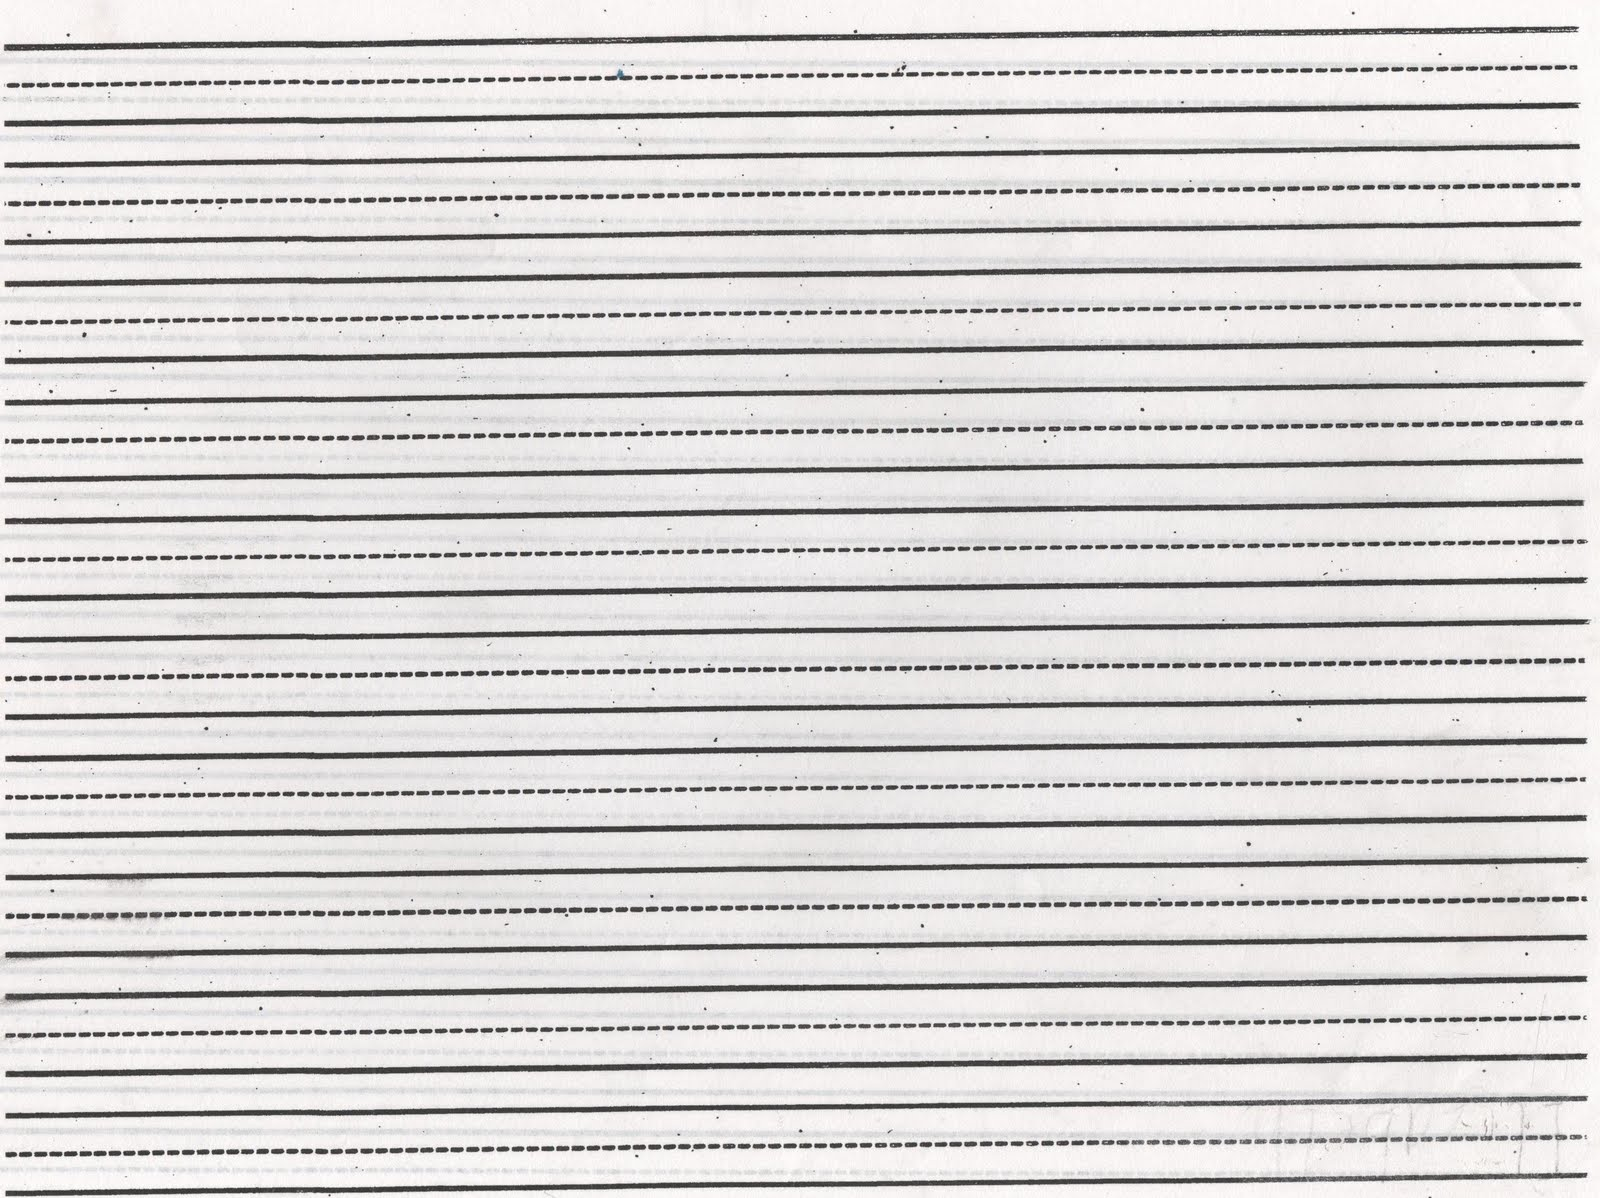 Free Lined Writing Paper For 3rd Grade